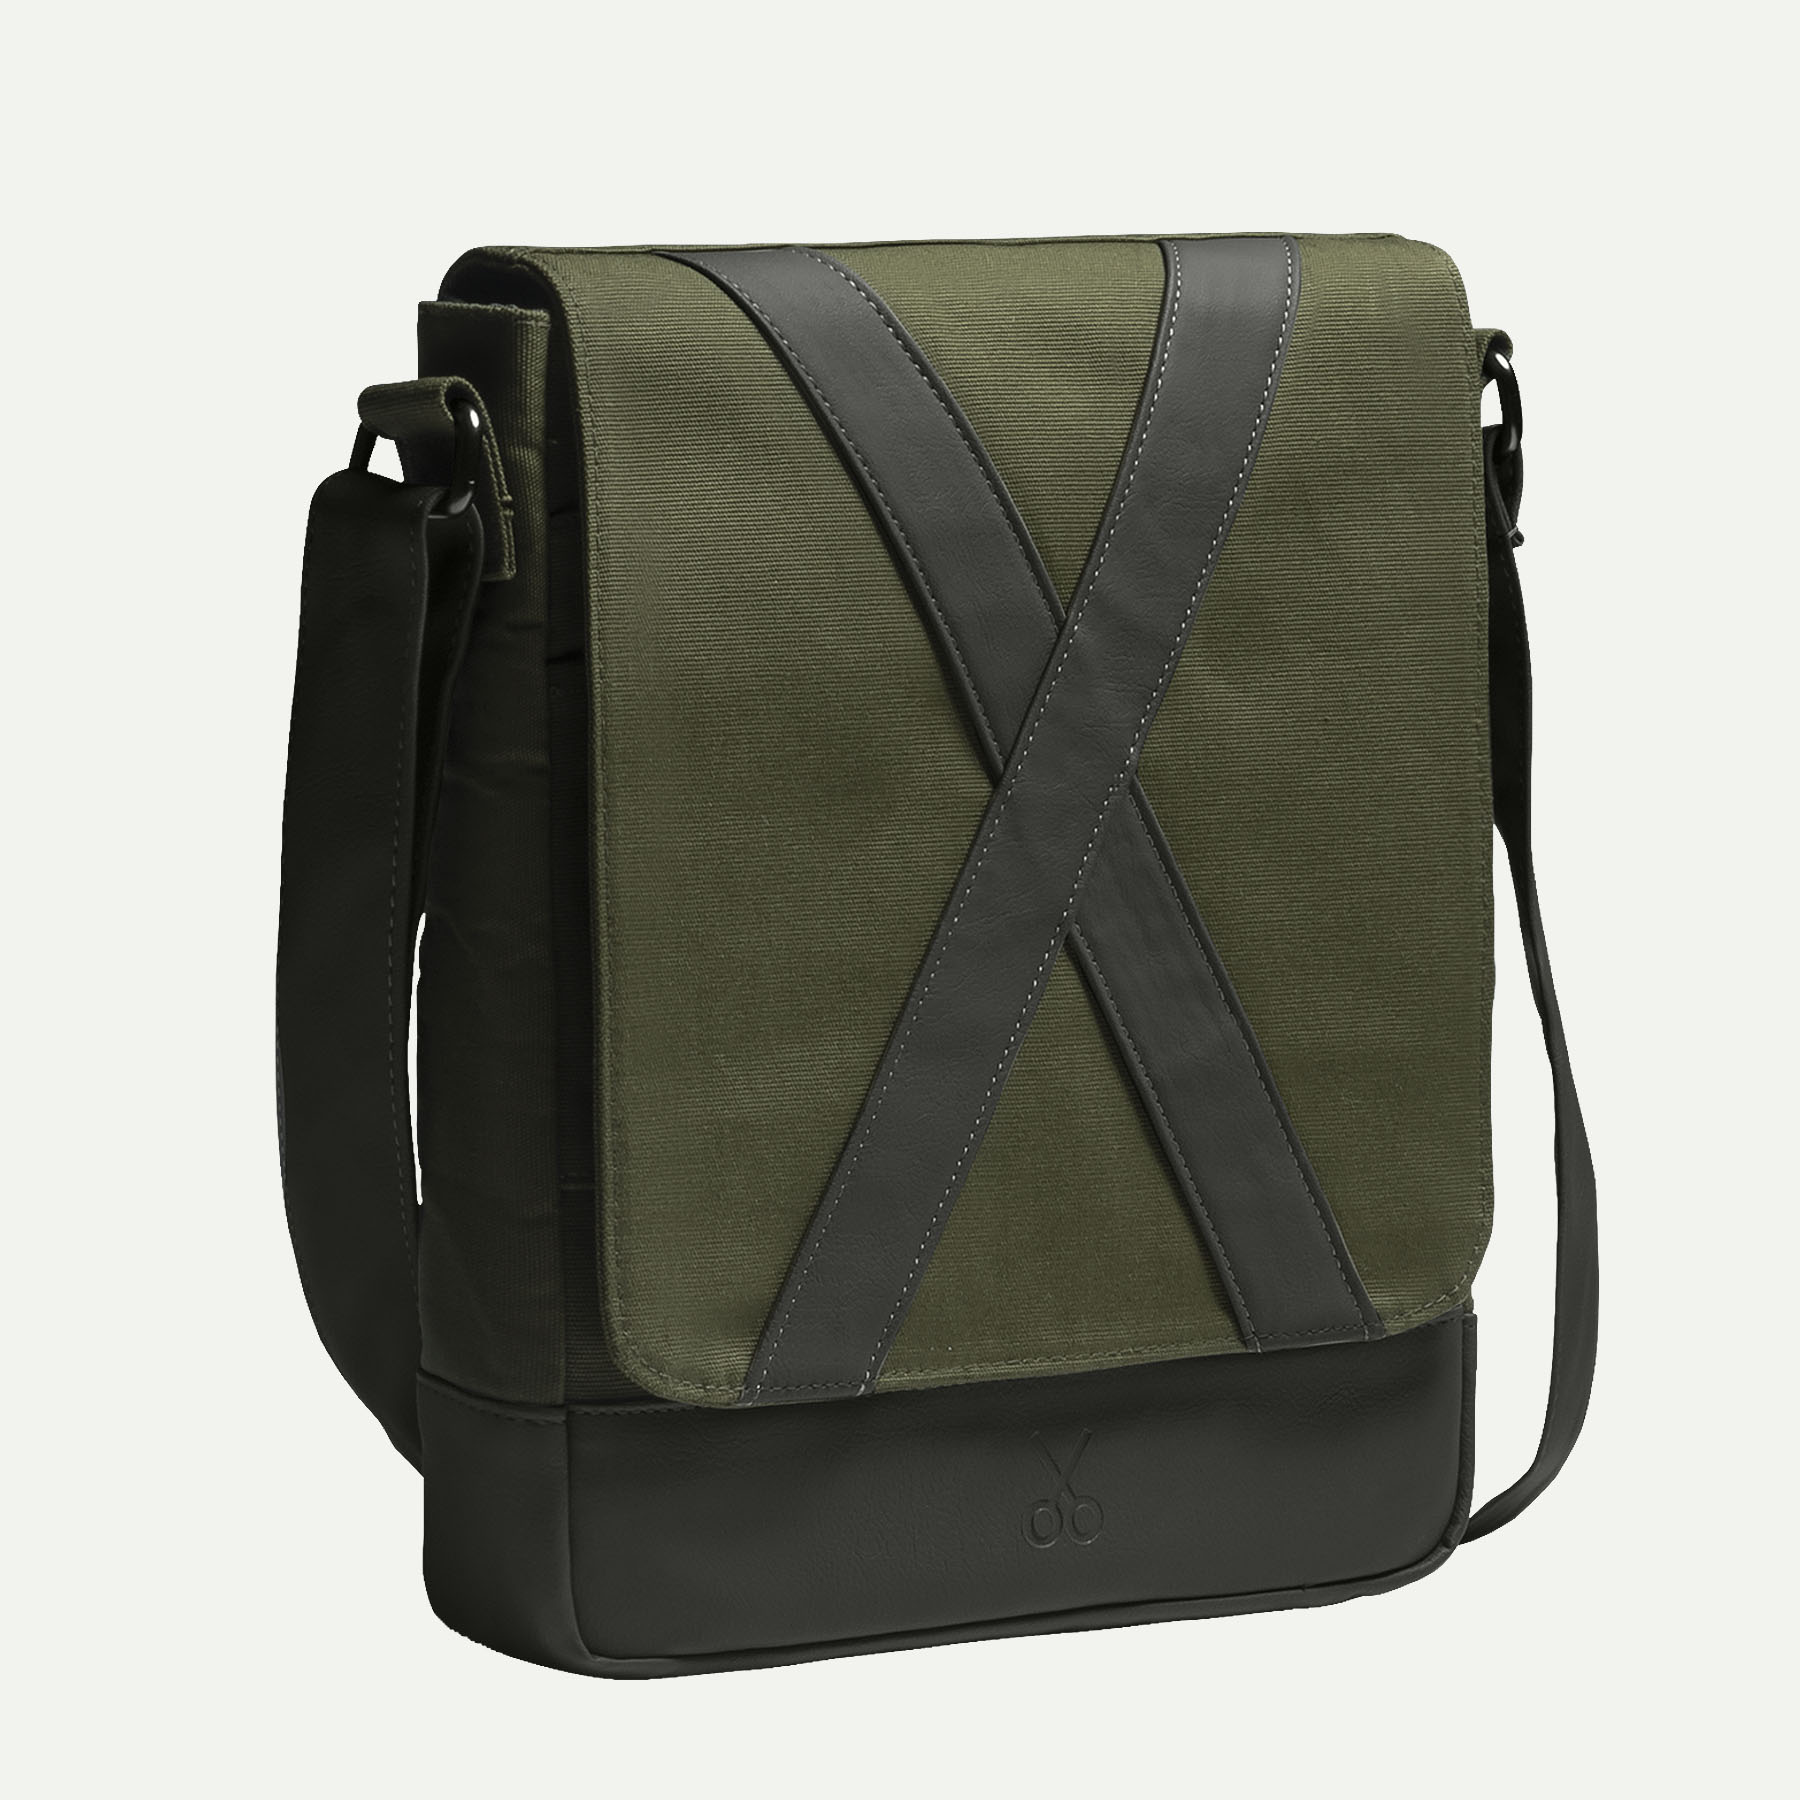 METHONE - OLIVE Bag